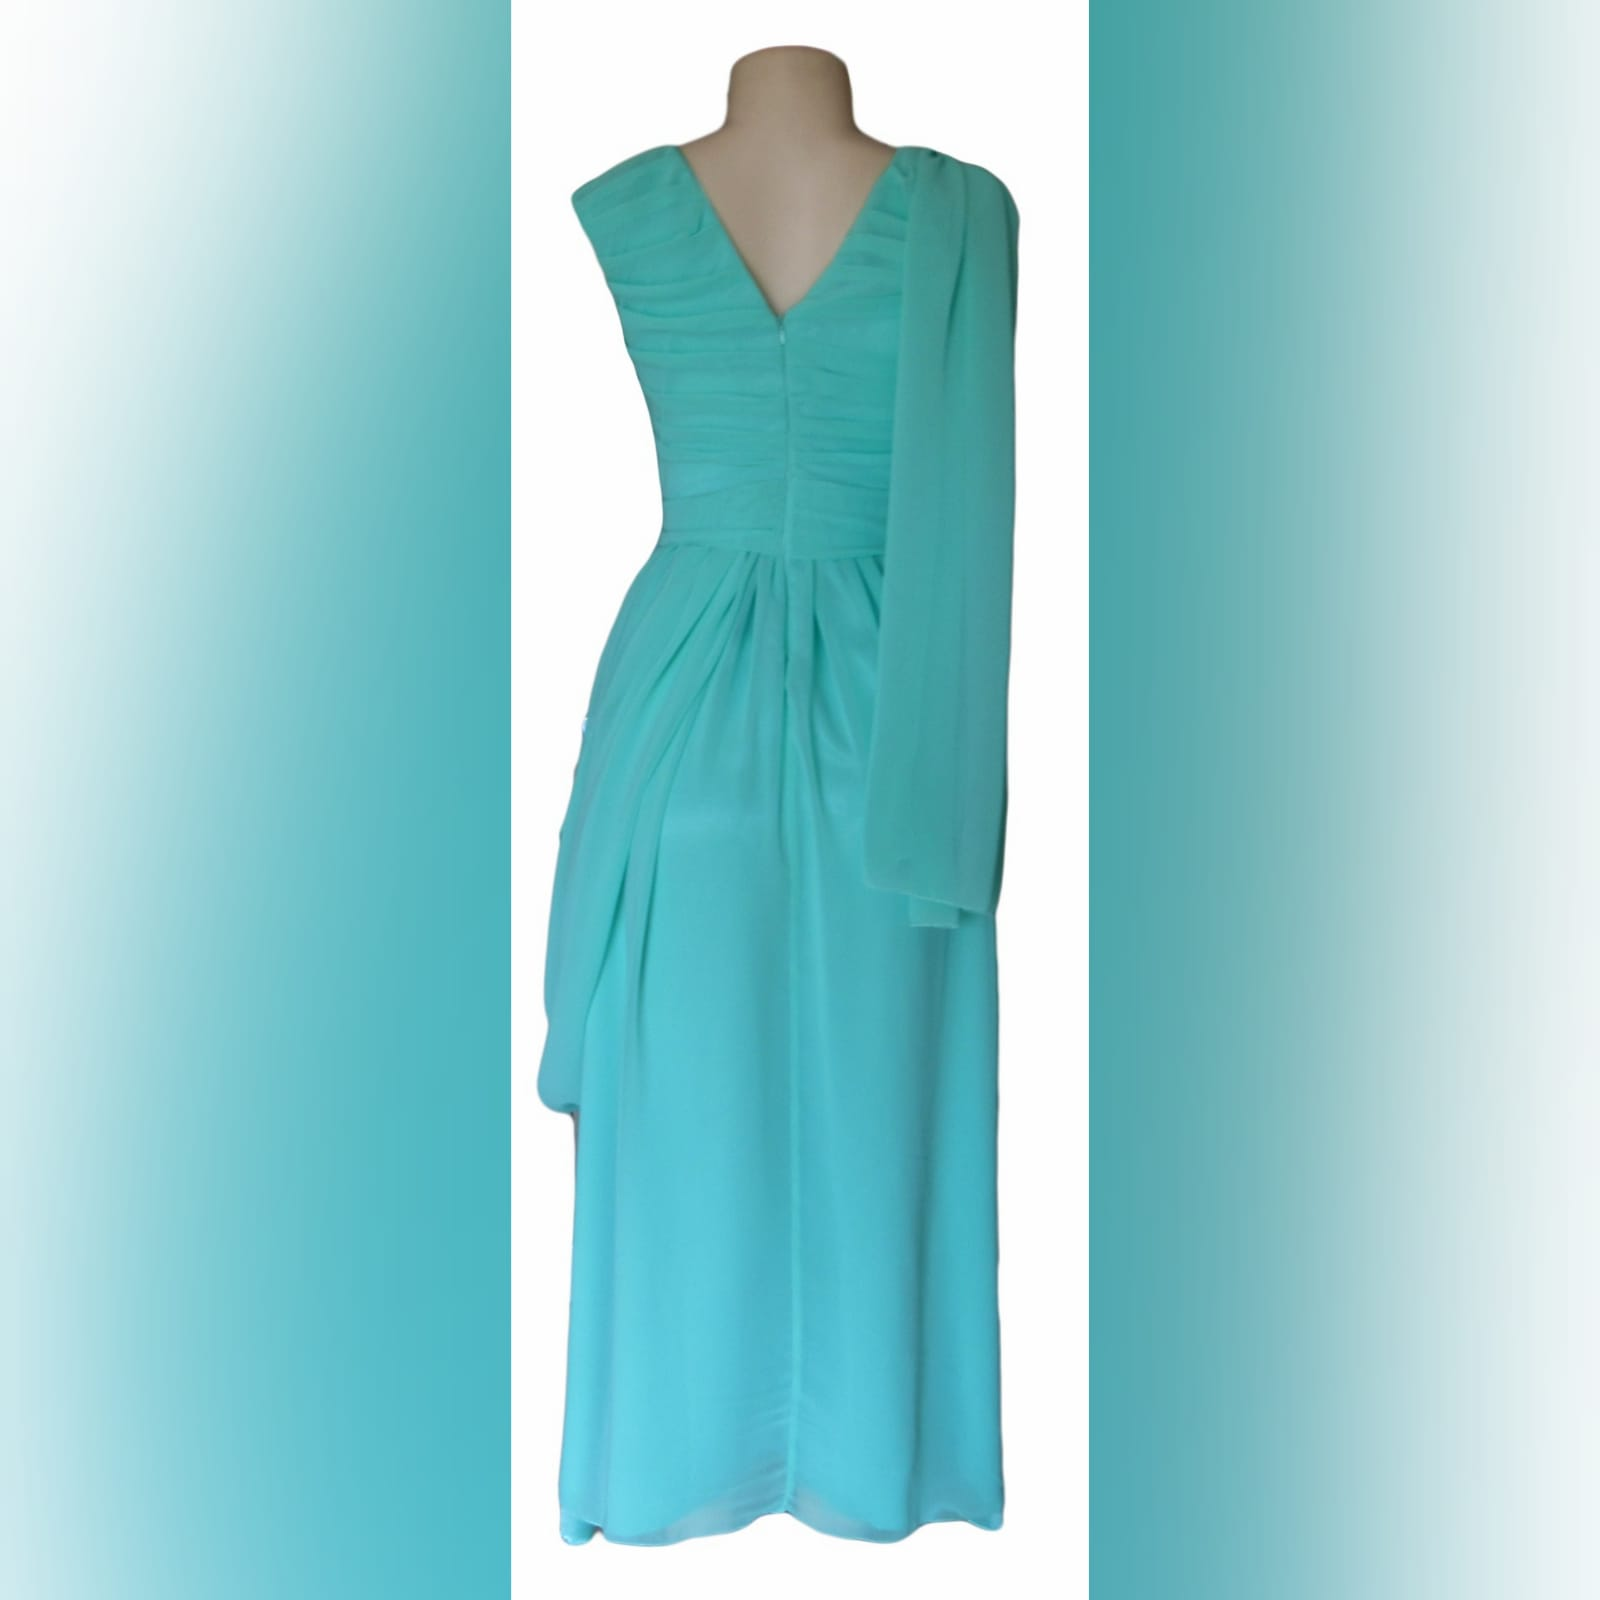 Mint green, long draped mother of the brides dress 2 mint green, long draped mother of the brides dress. With a crossed bust v neckline. Shoulder and hip draping detail.